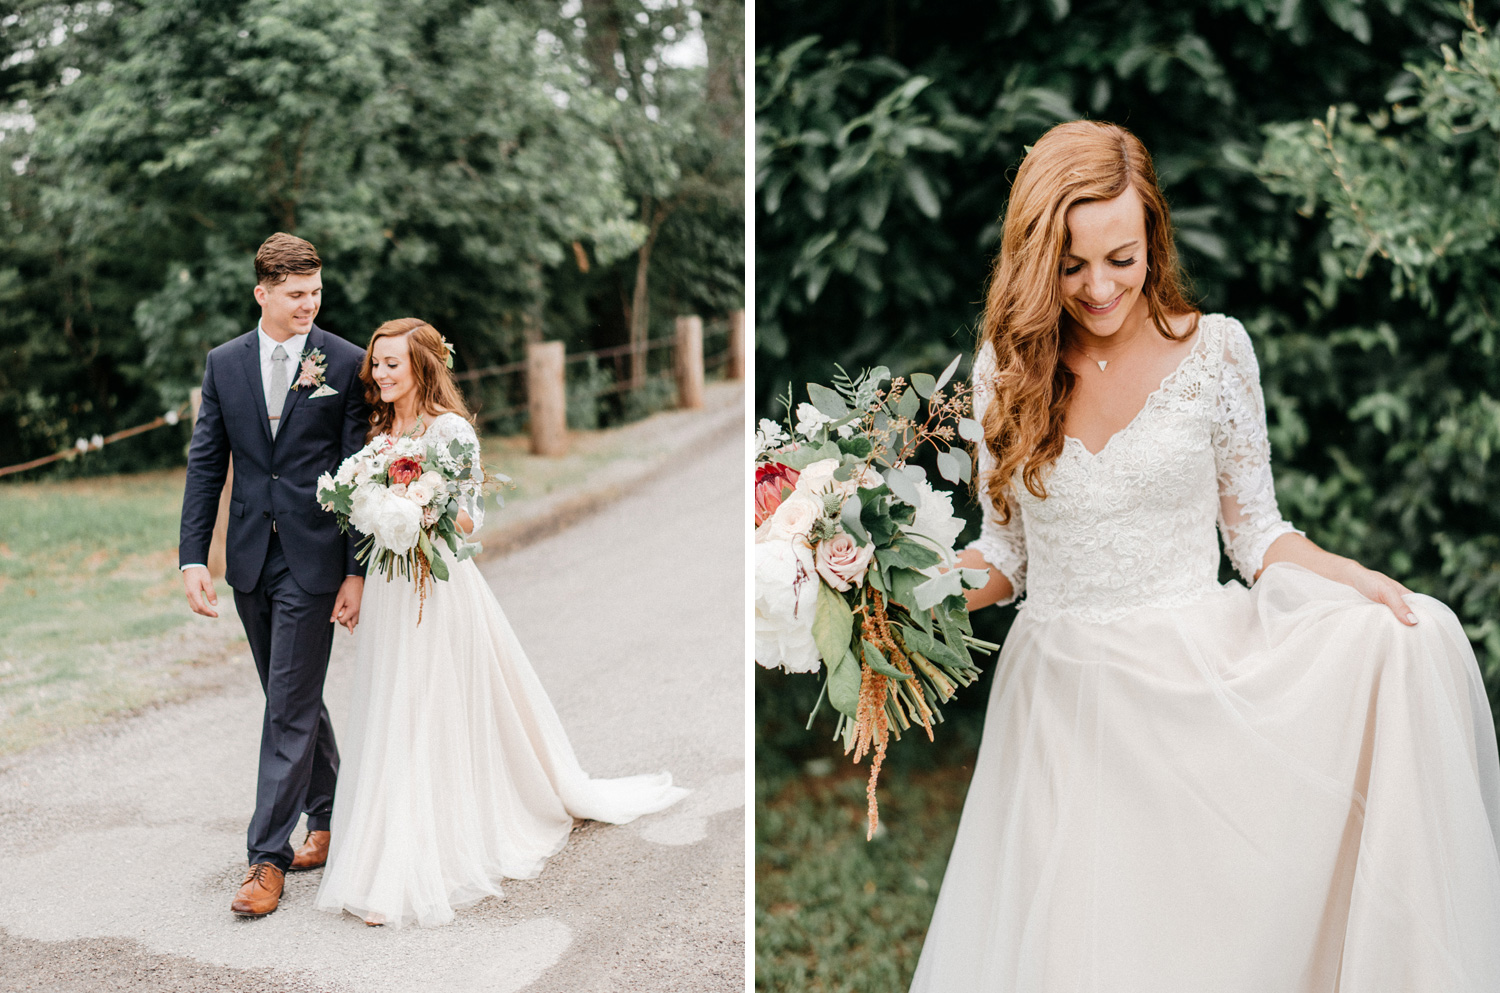 Bride and Groom Portraits at Southwind Hills by geneoh photograp